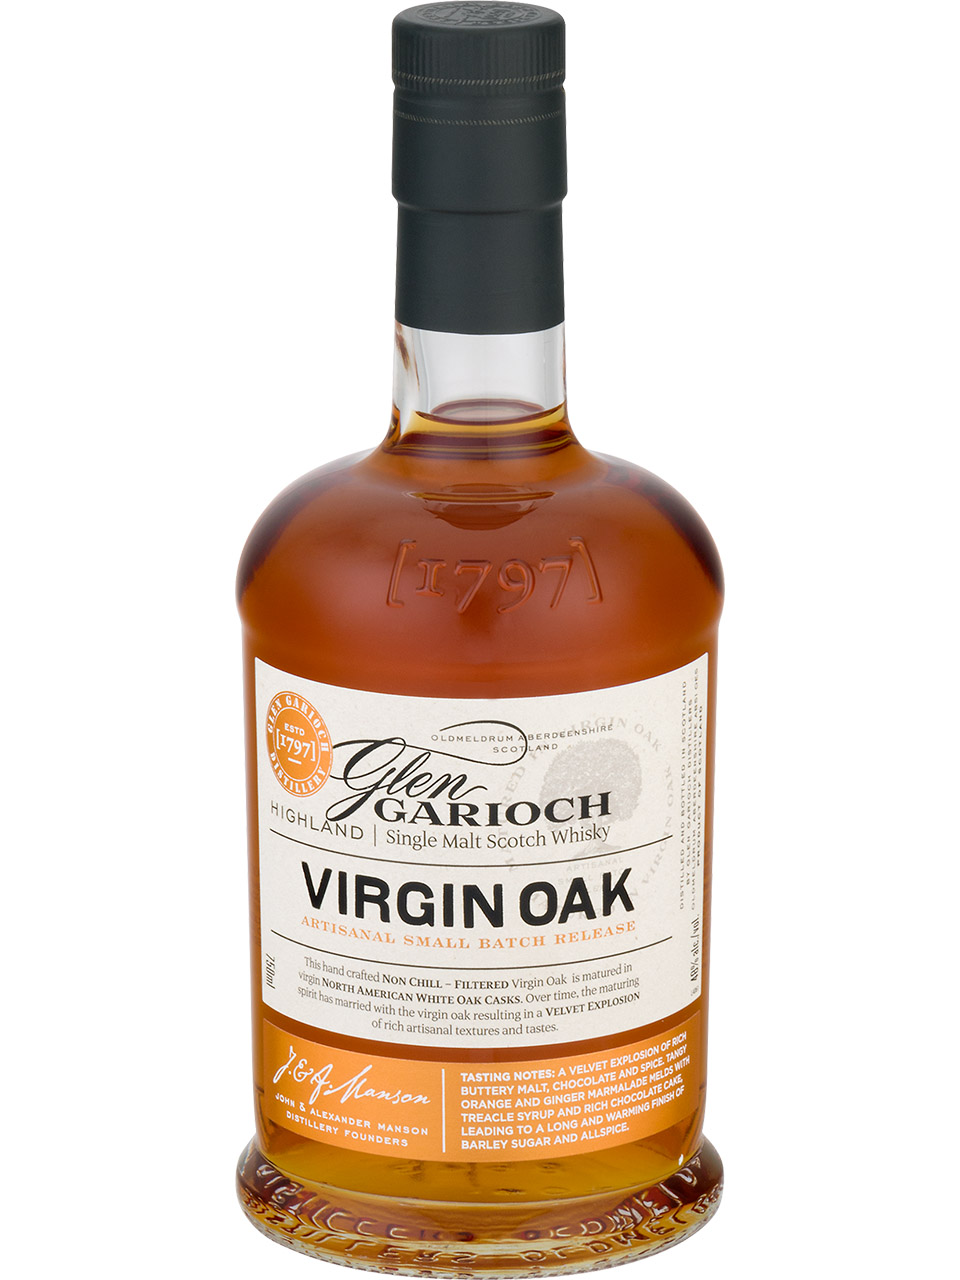 Glen Garioch Virgin Oak Single Malt Scotch Whisky